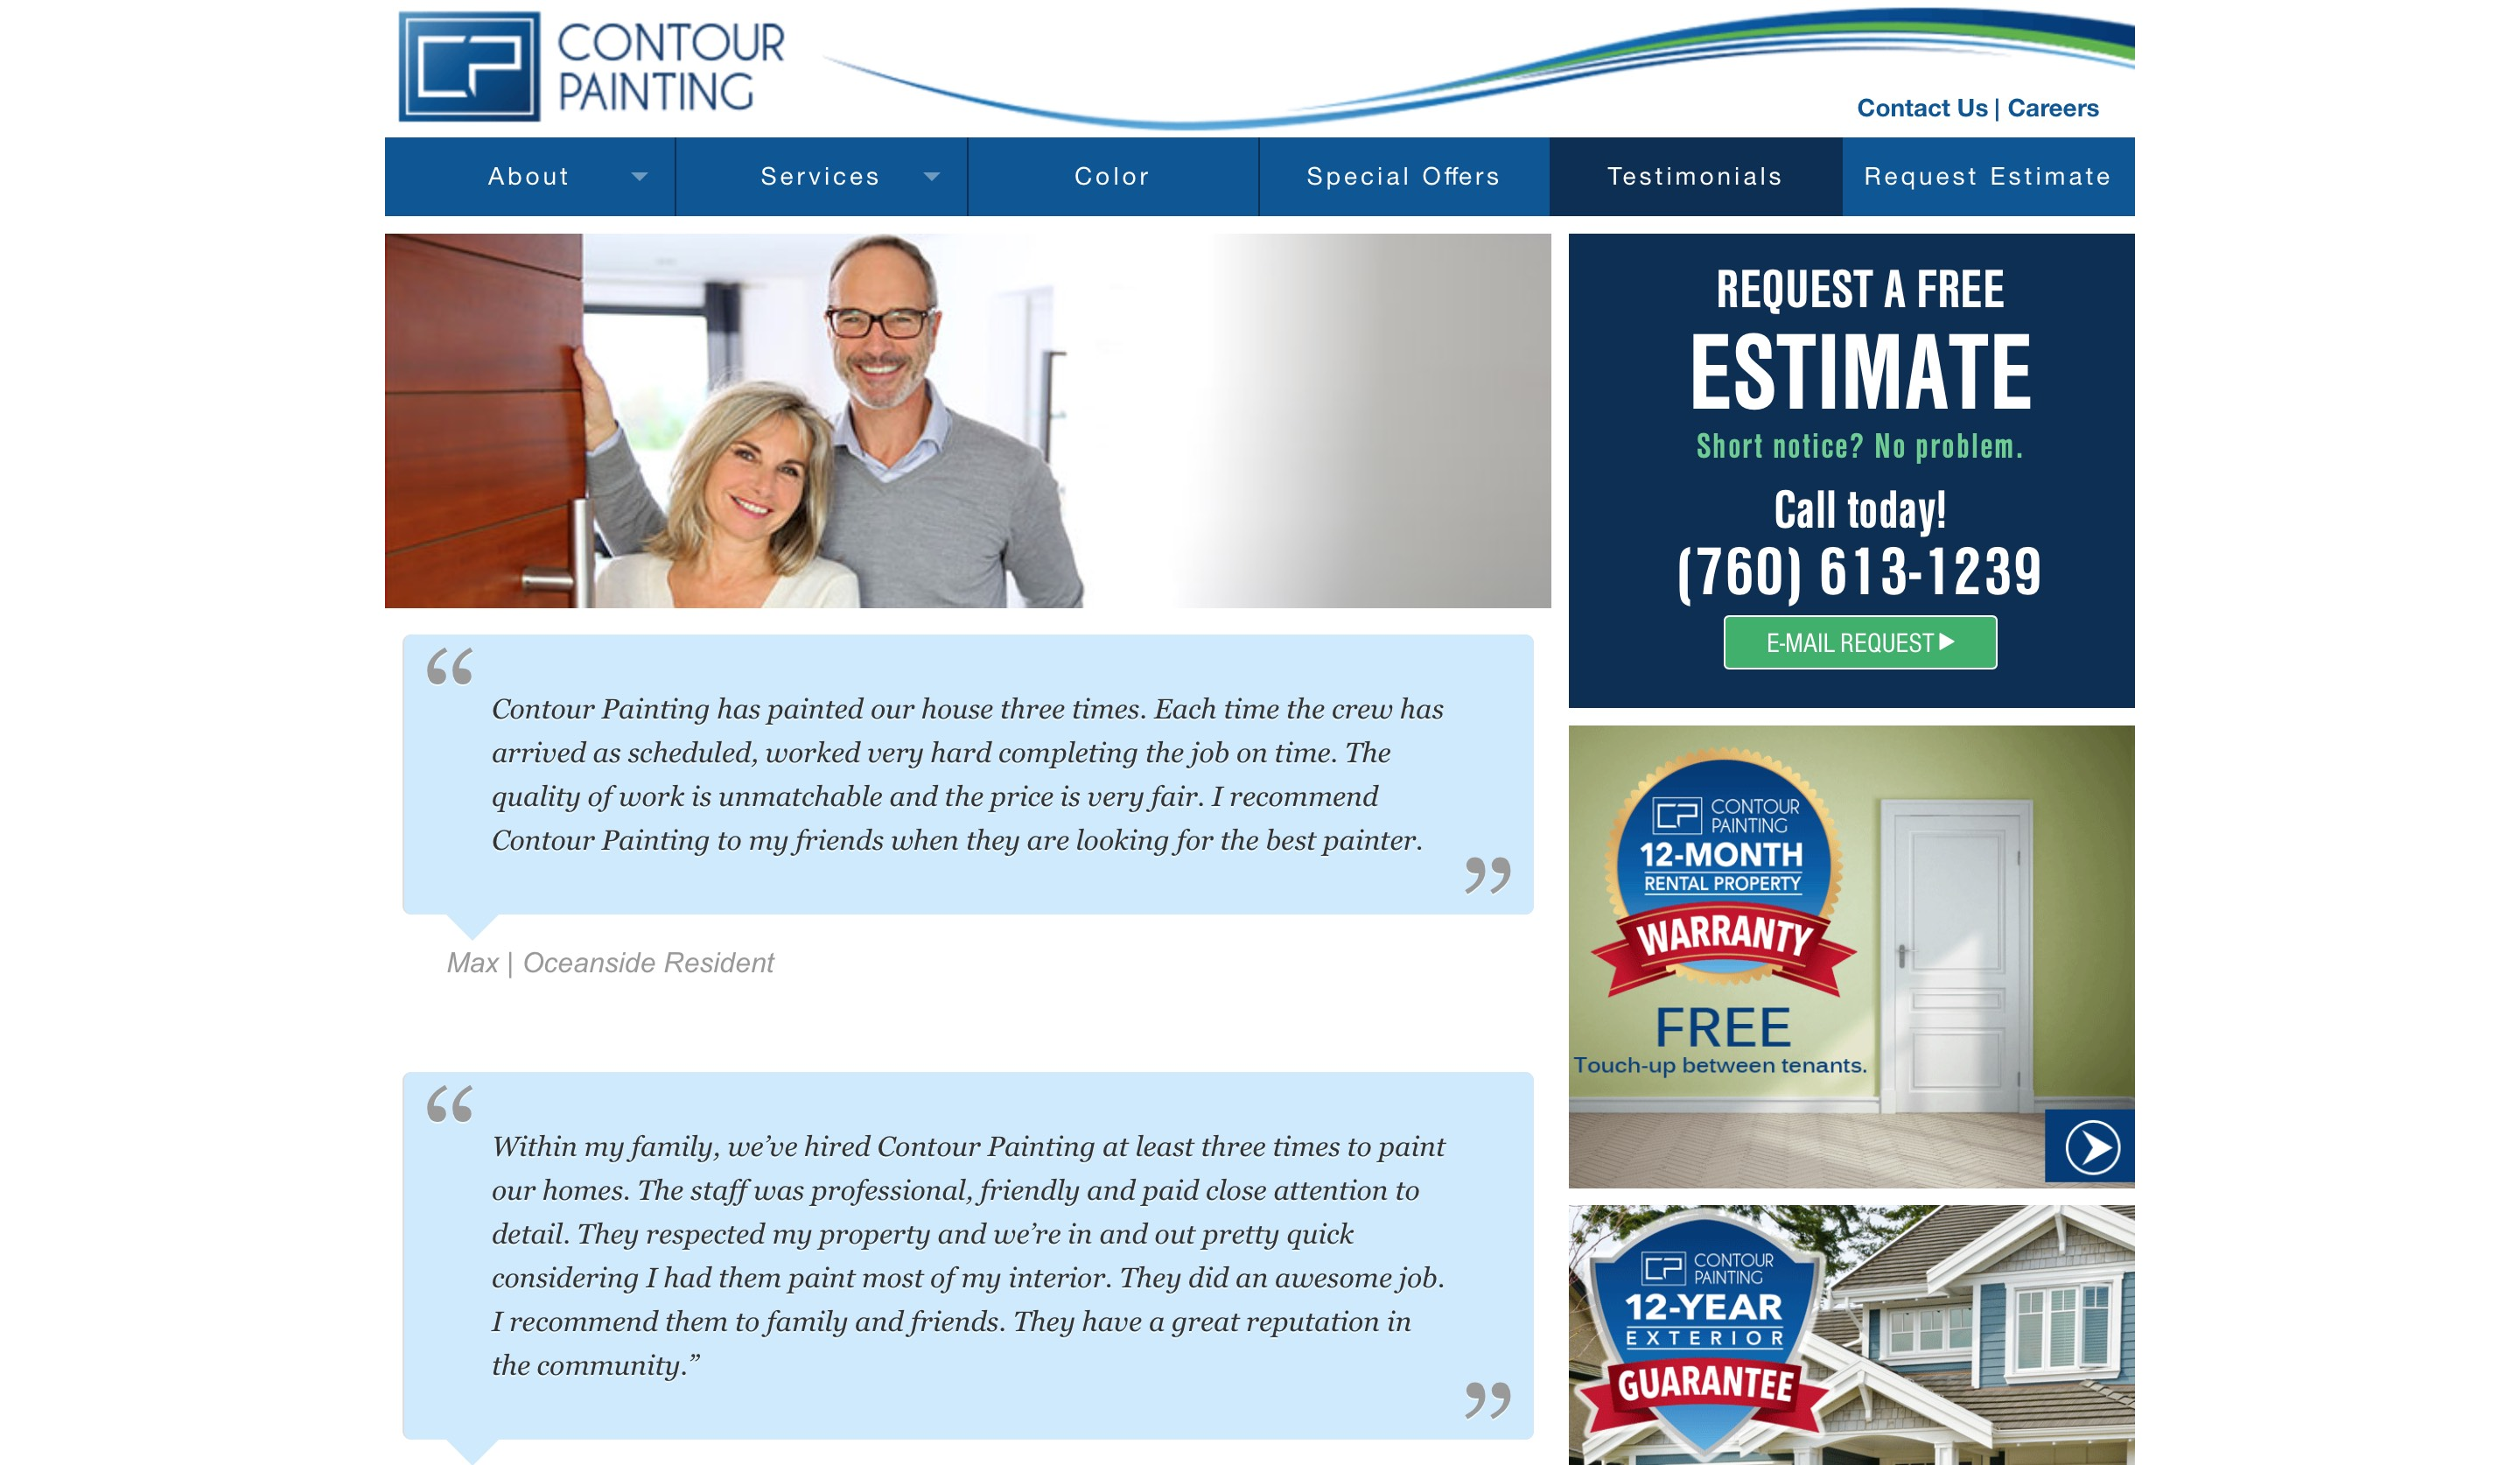 Countour Painting website testimonials page screenshot